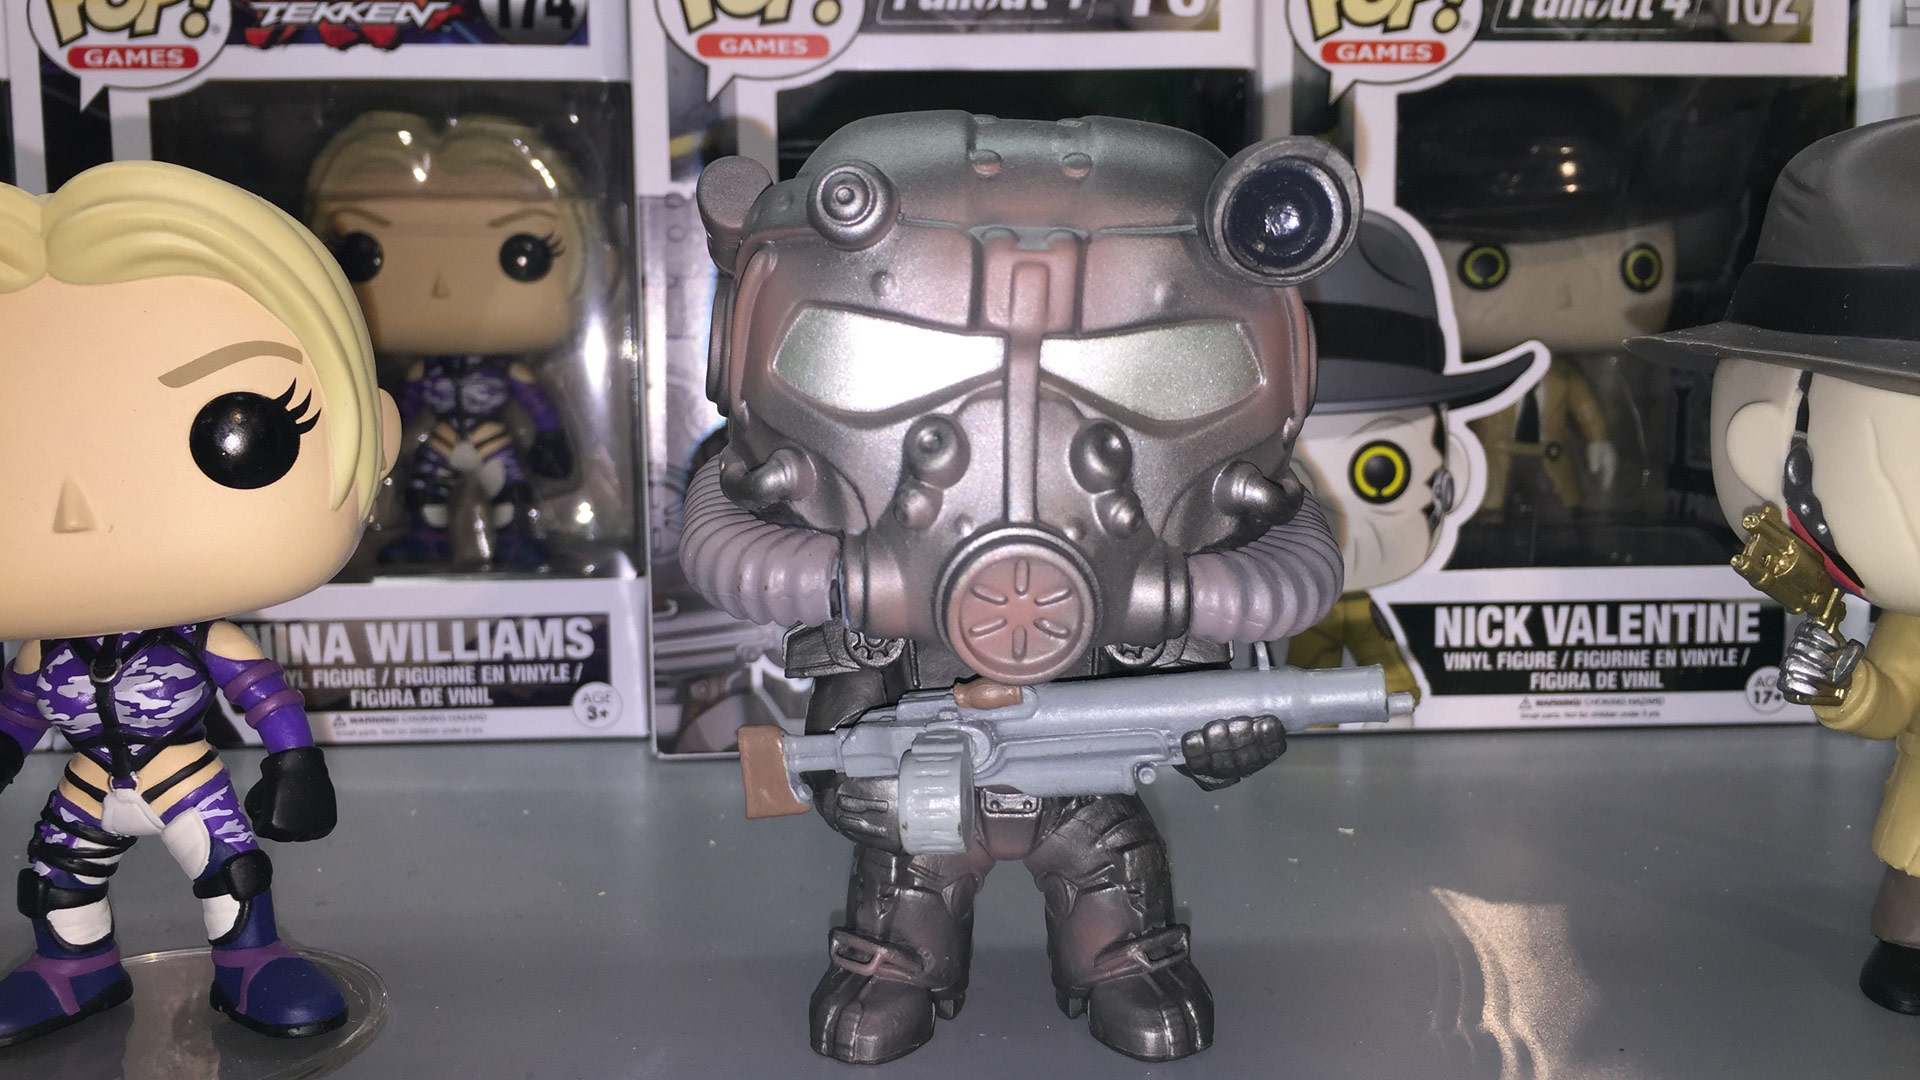 Funko Pop Fallout 4 with T-60 Power Armor #78 Vinyl Figure at Toy Fair 2017